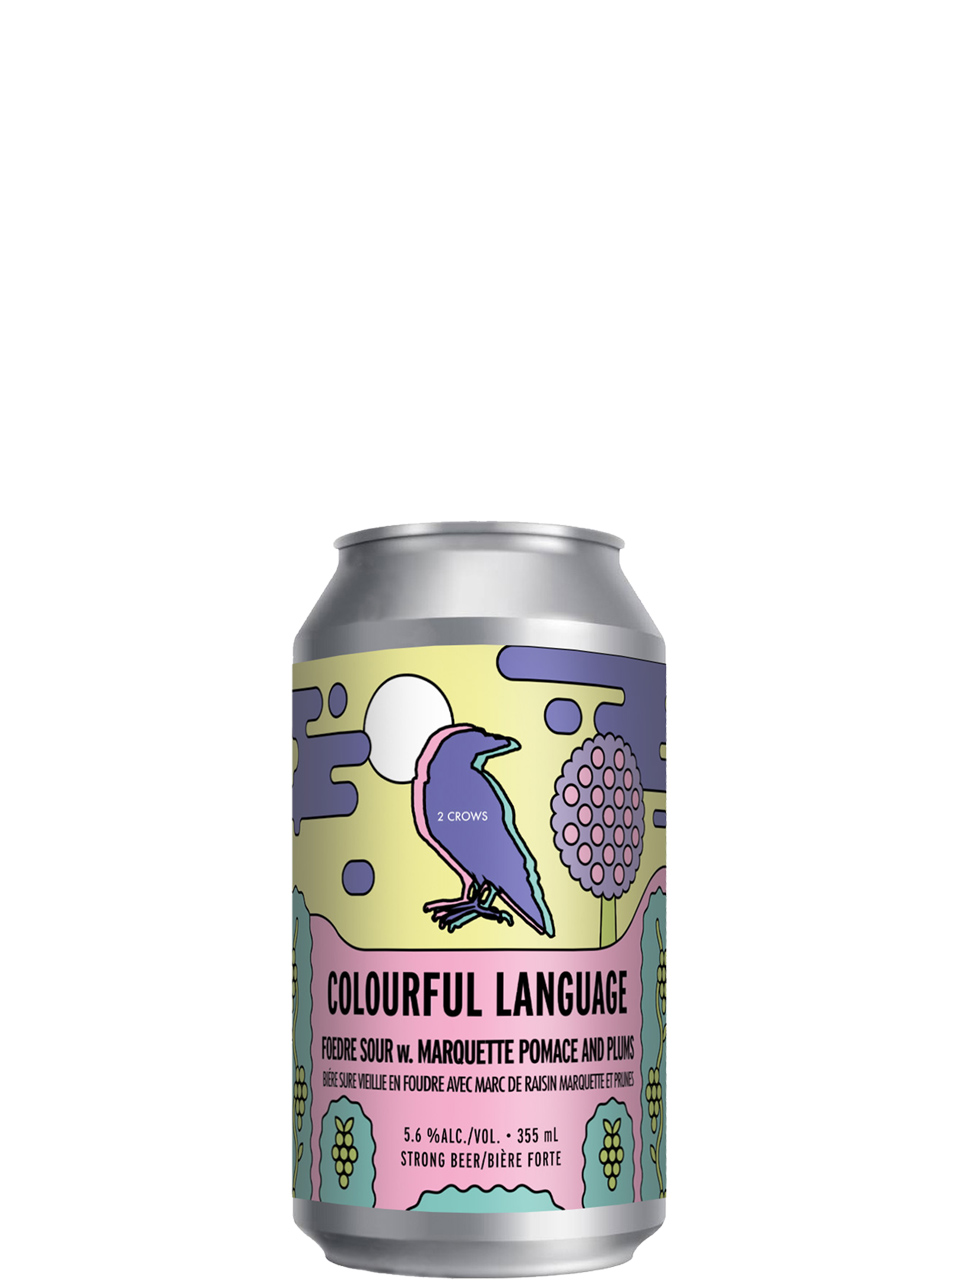 2 Crows Colourful Language 355ml Can